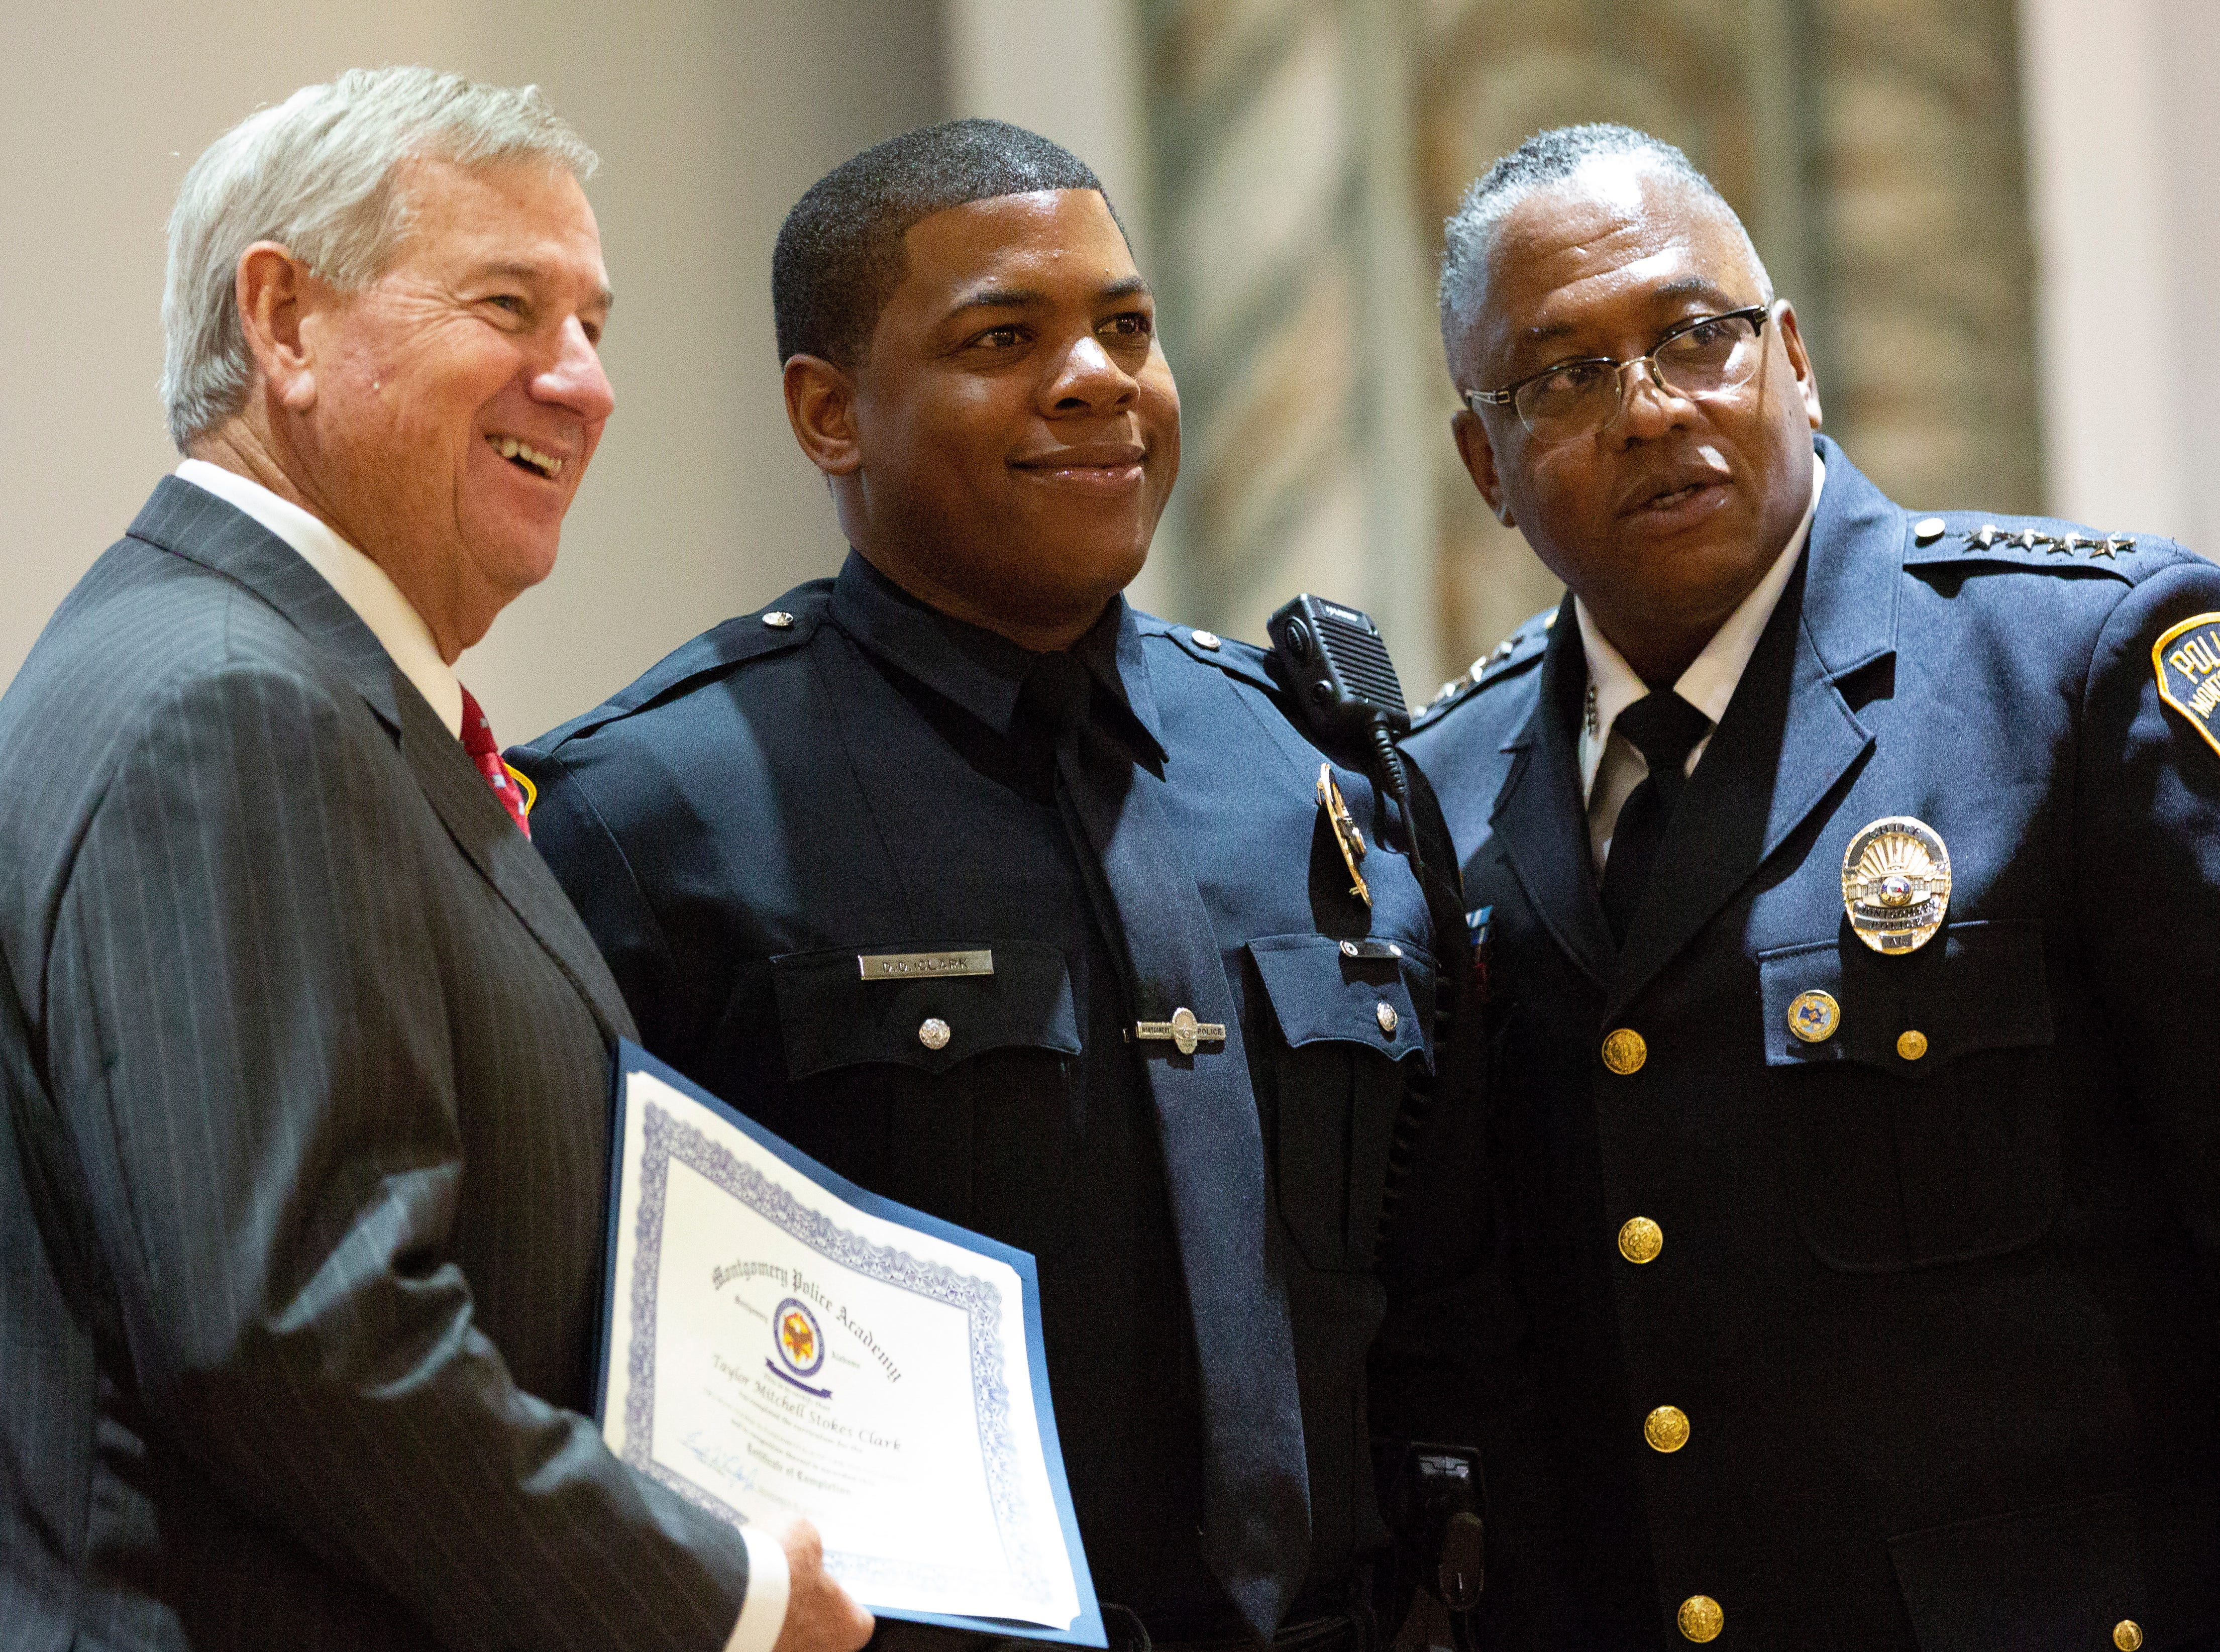 Montgomery police officer Dontavious Clark poses for a photo after graduating from the academy.